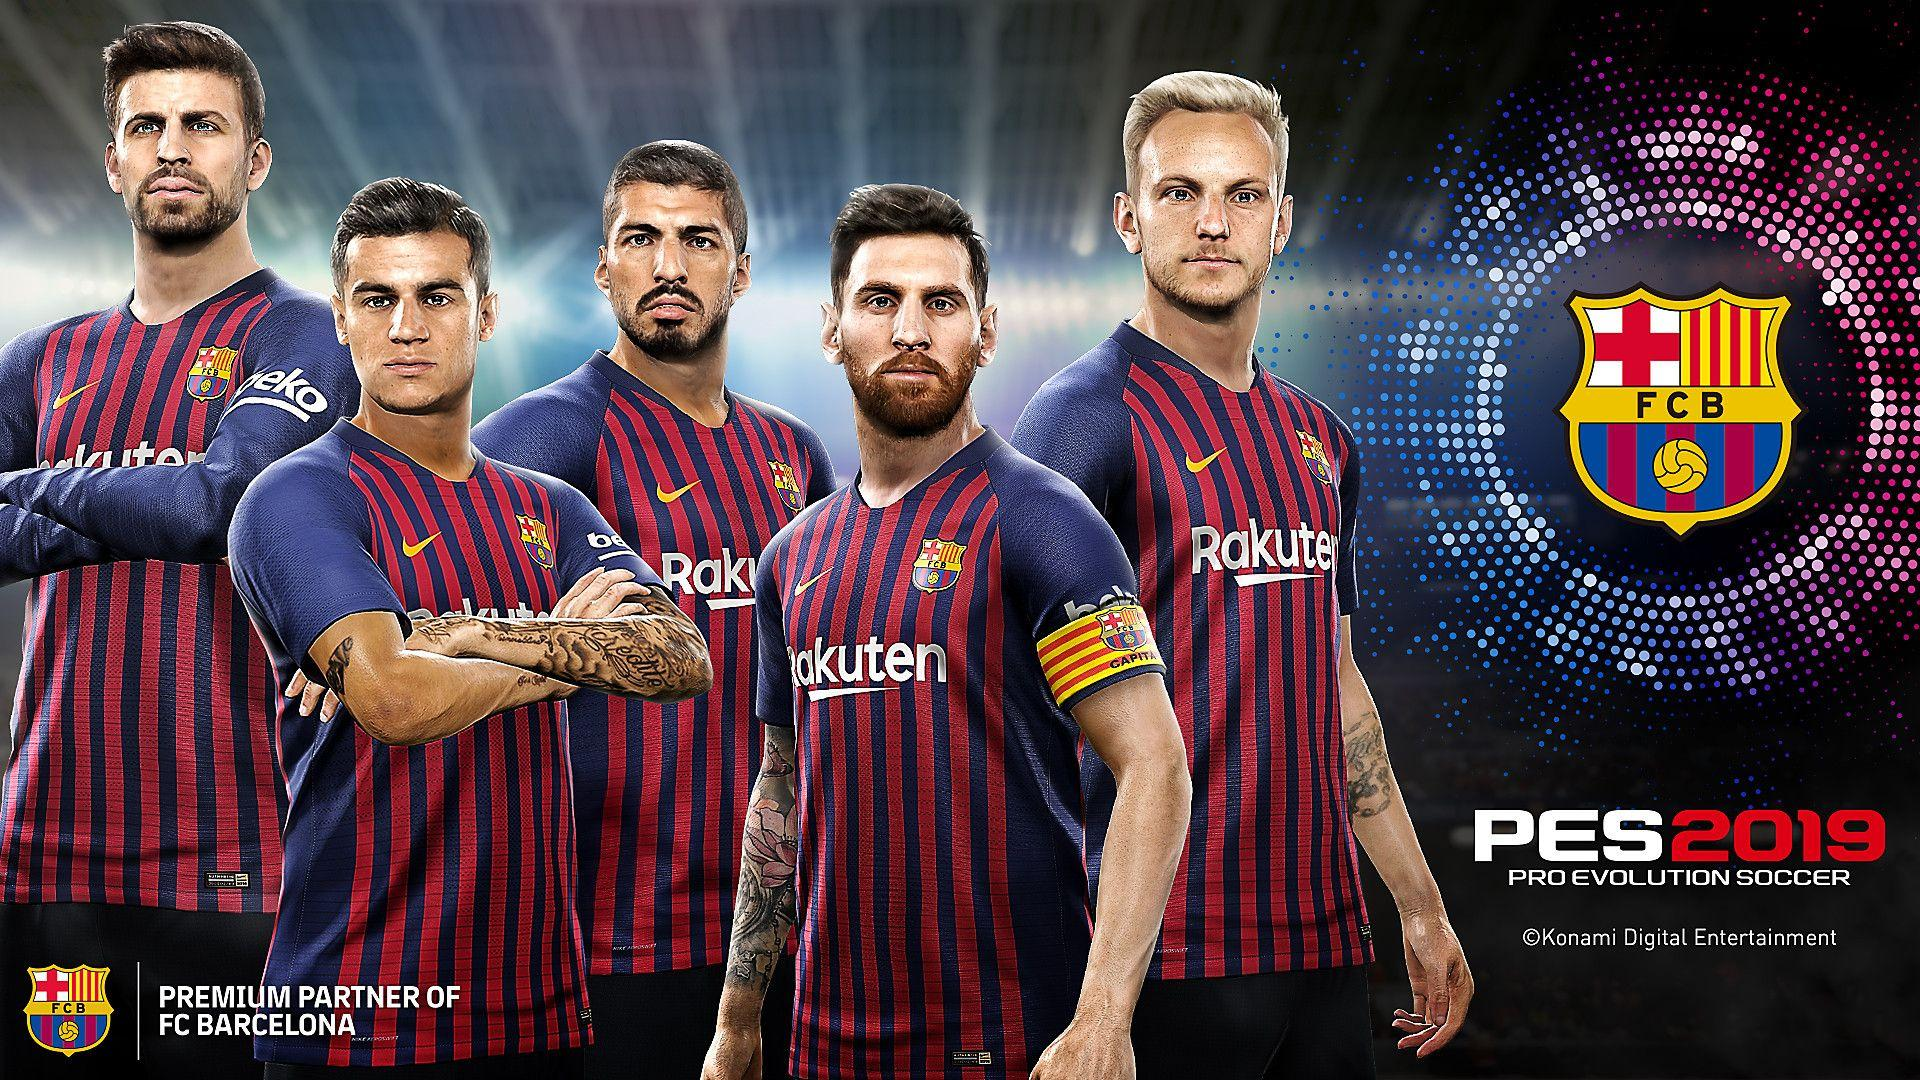 Soccer Wallpapers Backgrounds Pro: FCB 2019 Wallpapers